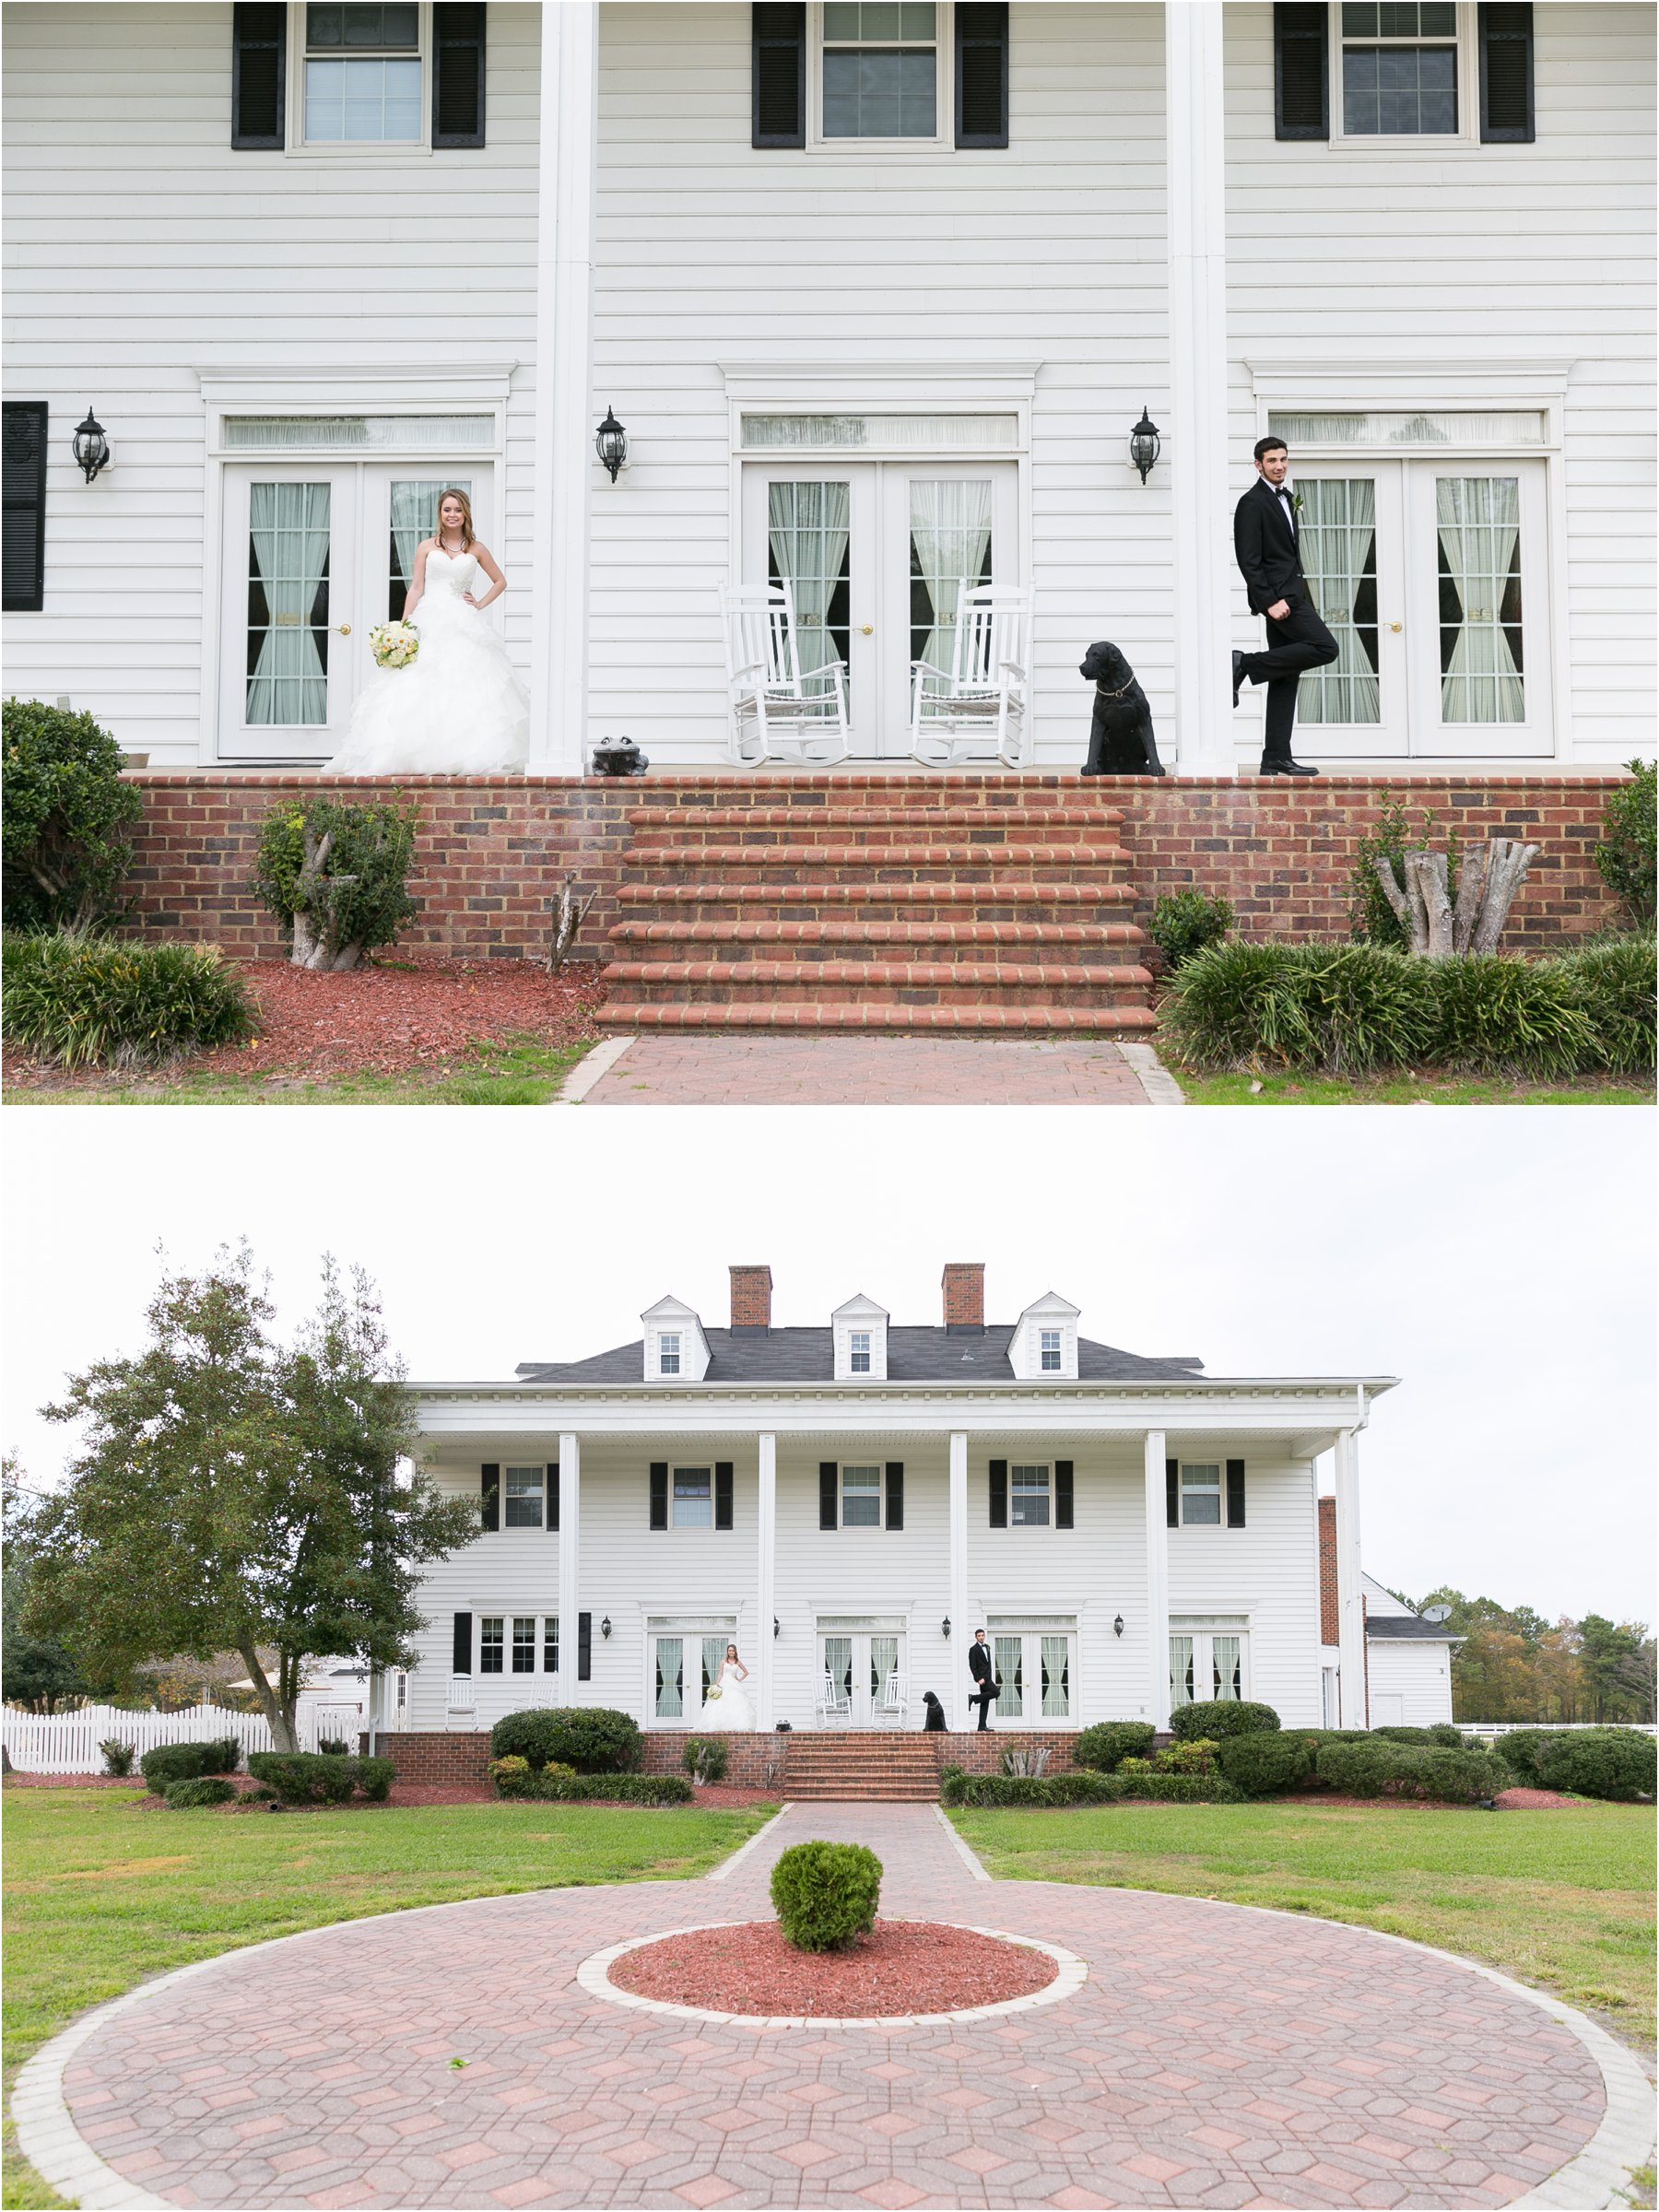 Holly_Ridge_Manor_Wedding_Photography_Jessica_Ryan_Photography_virginia_virginia_beach_0259